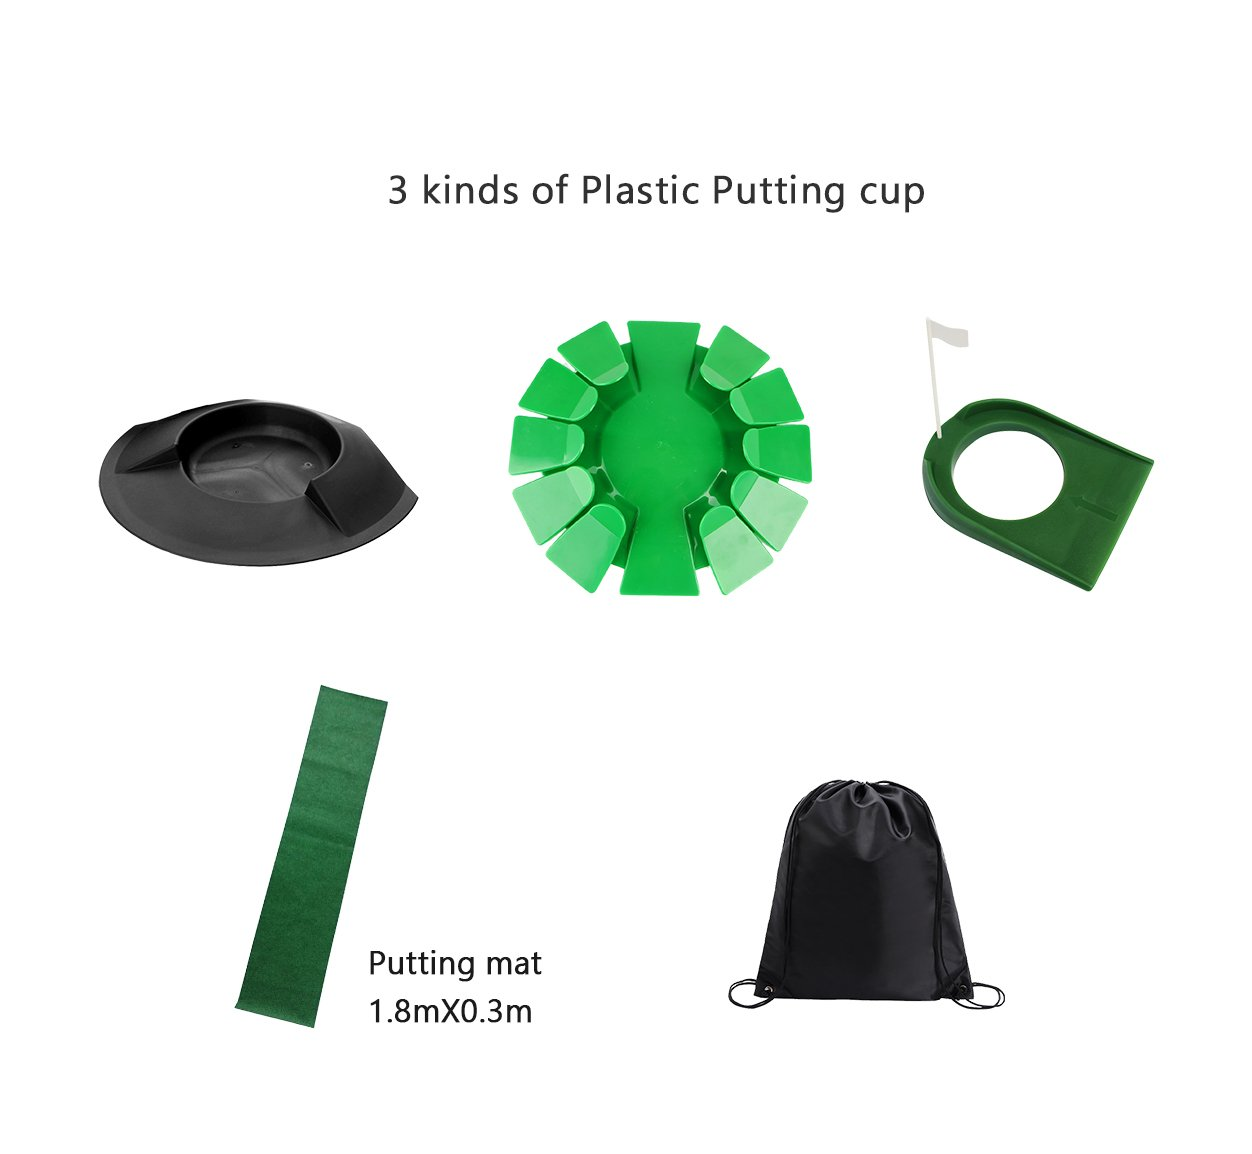 POSMA PHS006 Plastic Practice Putting Cup Golf Hole Training Aid Indoor/Outdoor Bundle set with 3 kinds of Plastic Putting cup+1.8m x 0.3m Putting Mat+1 set of Detachable putter+Black cinch sack bag